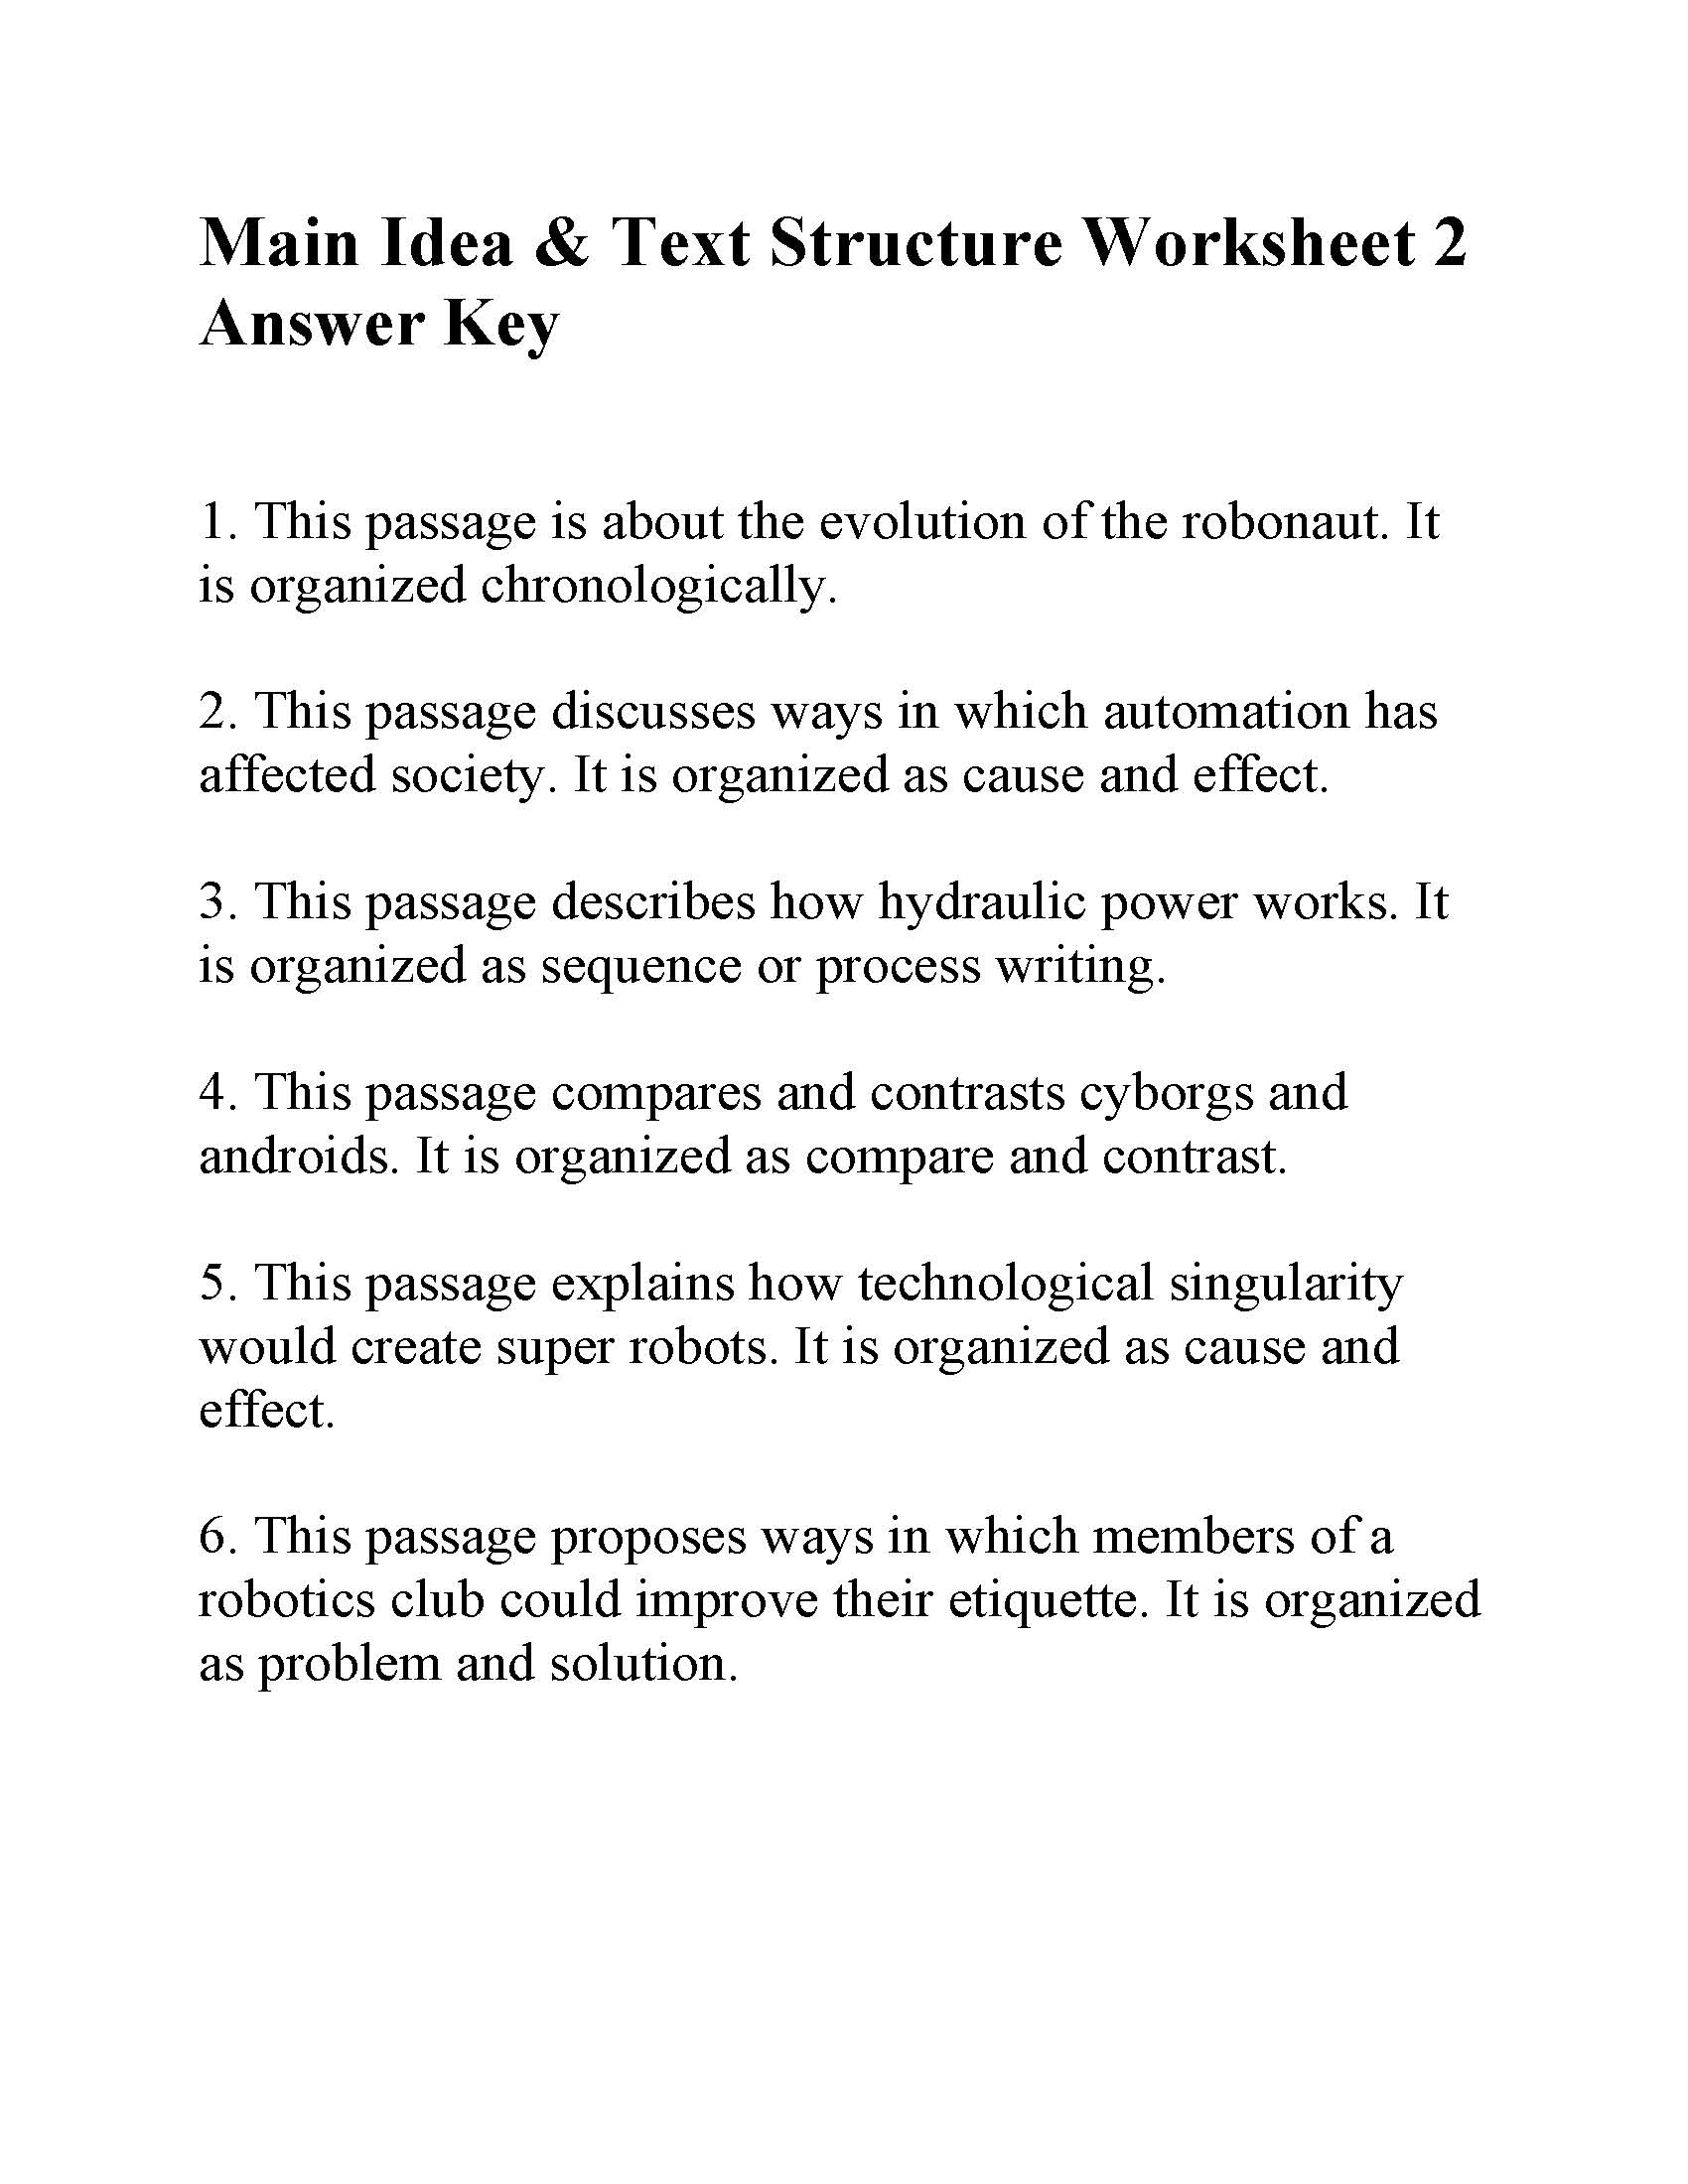 This is the answer key for the Main Idea and Text Structure Worksheet 2.